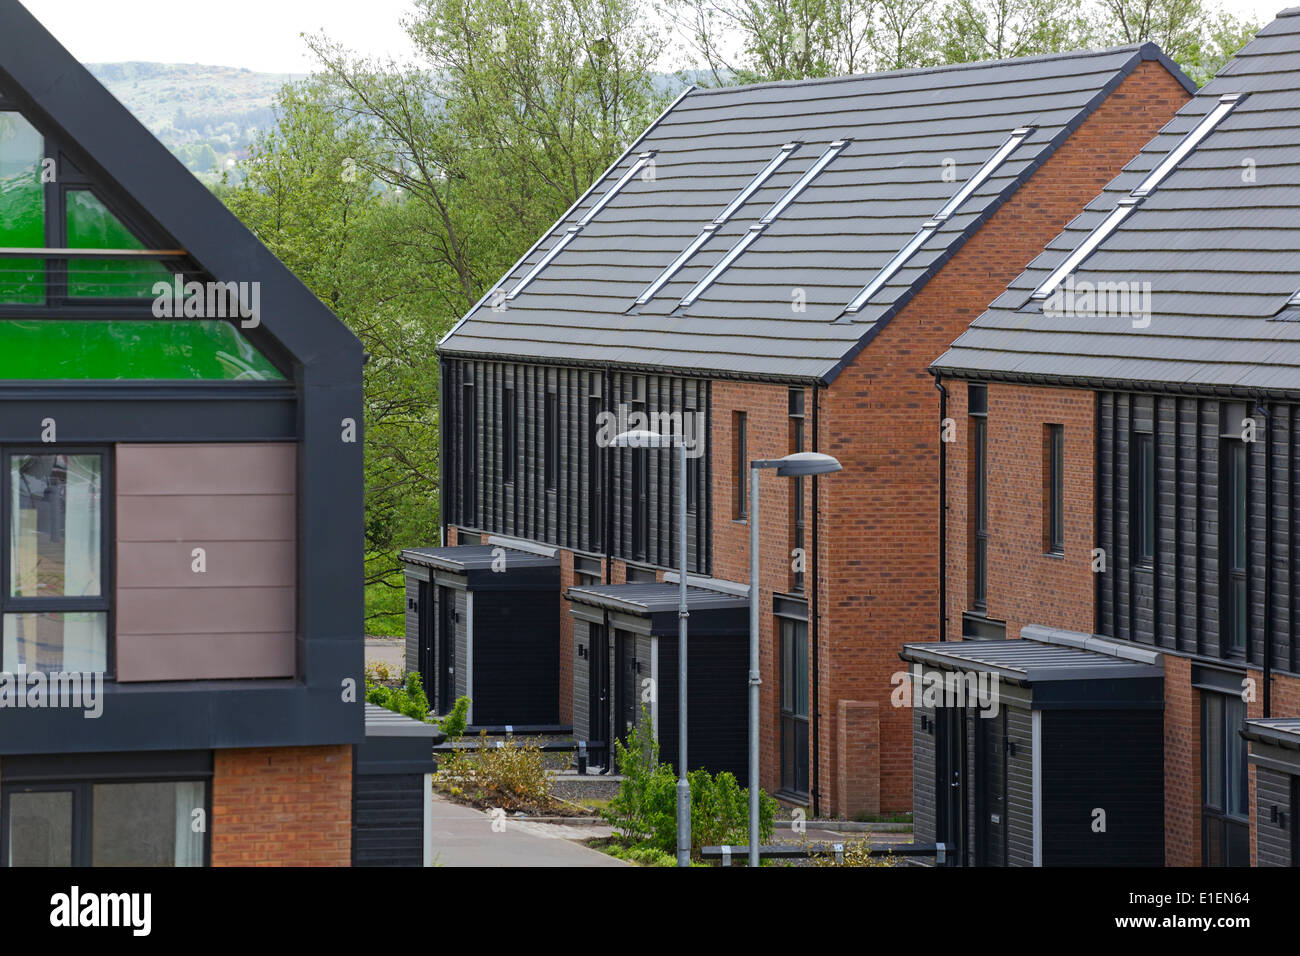 The Glasgow 2014 Commonwealth Games Athlete's Village in the East End of Glasgow, Scotland, UK - Stock Image